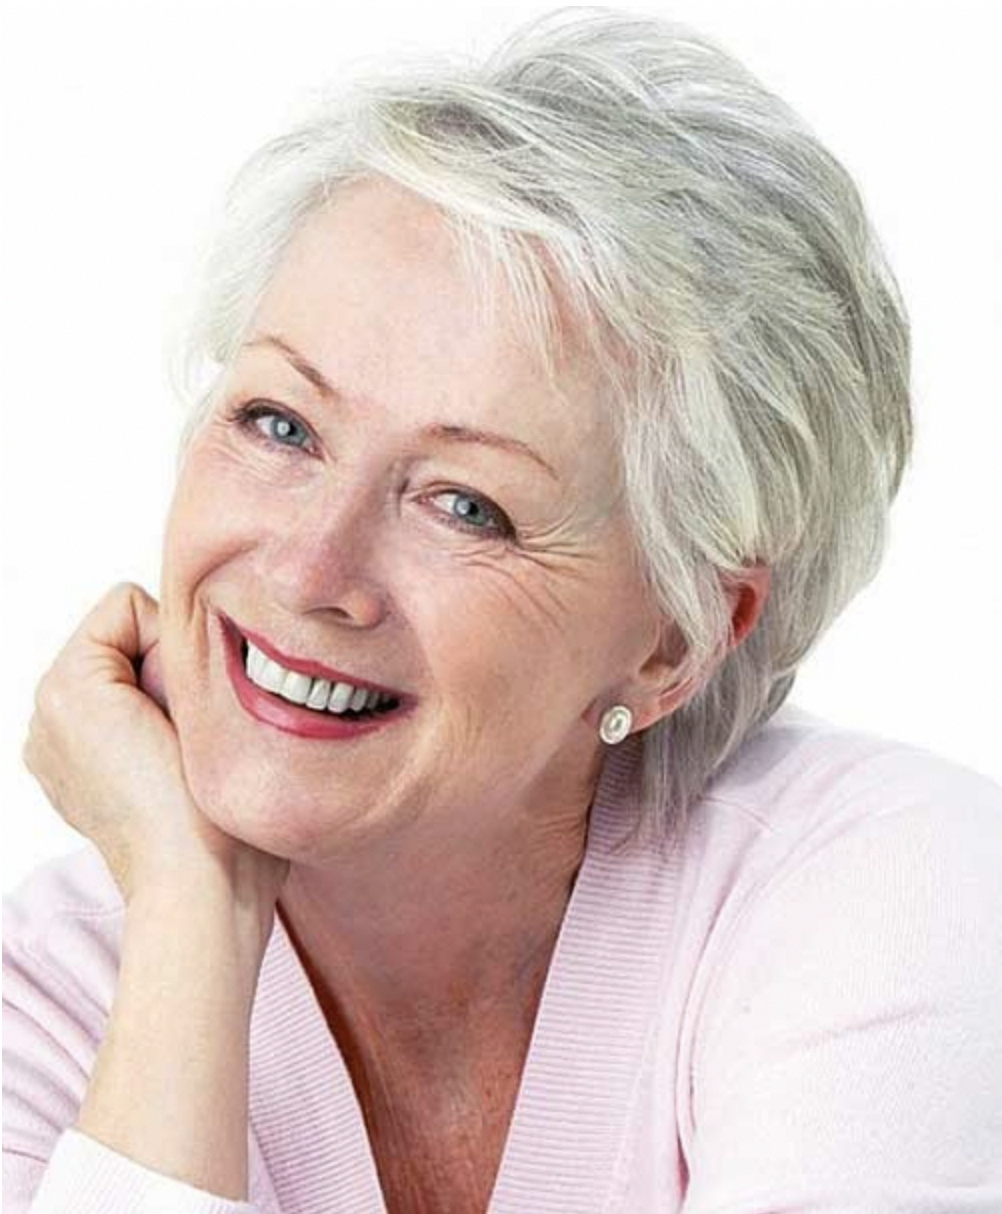 Short Hairstyles Over 50 Plus Size Shorthairstylesforwomenover60 Over 60 Hairstyles Haircuts For Over 60 Short Hair Over 60